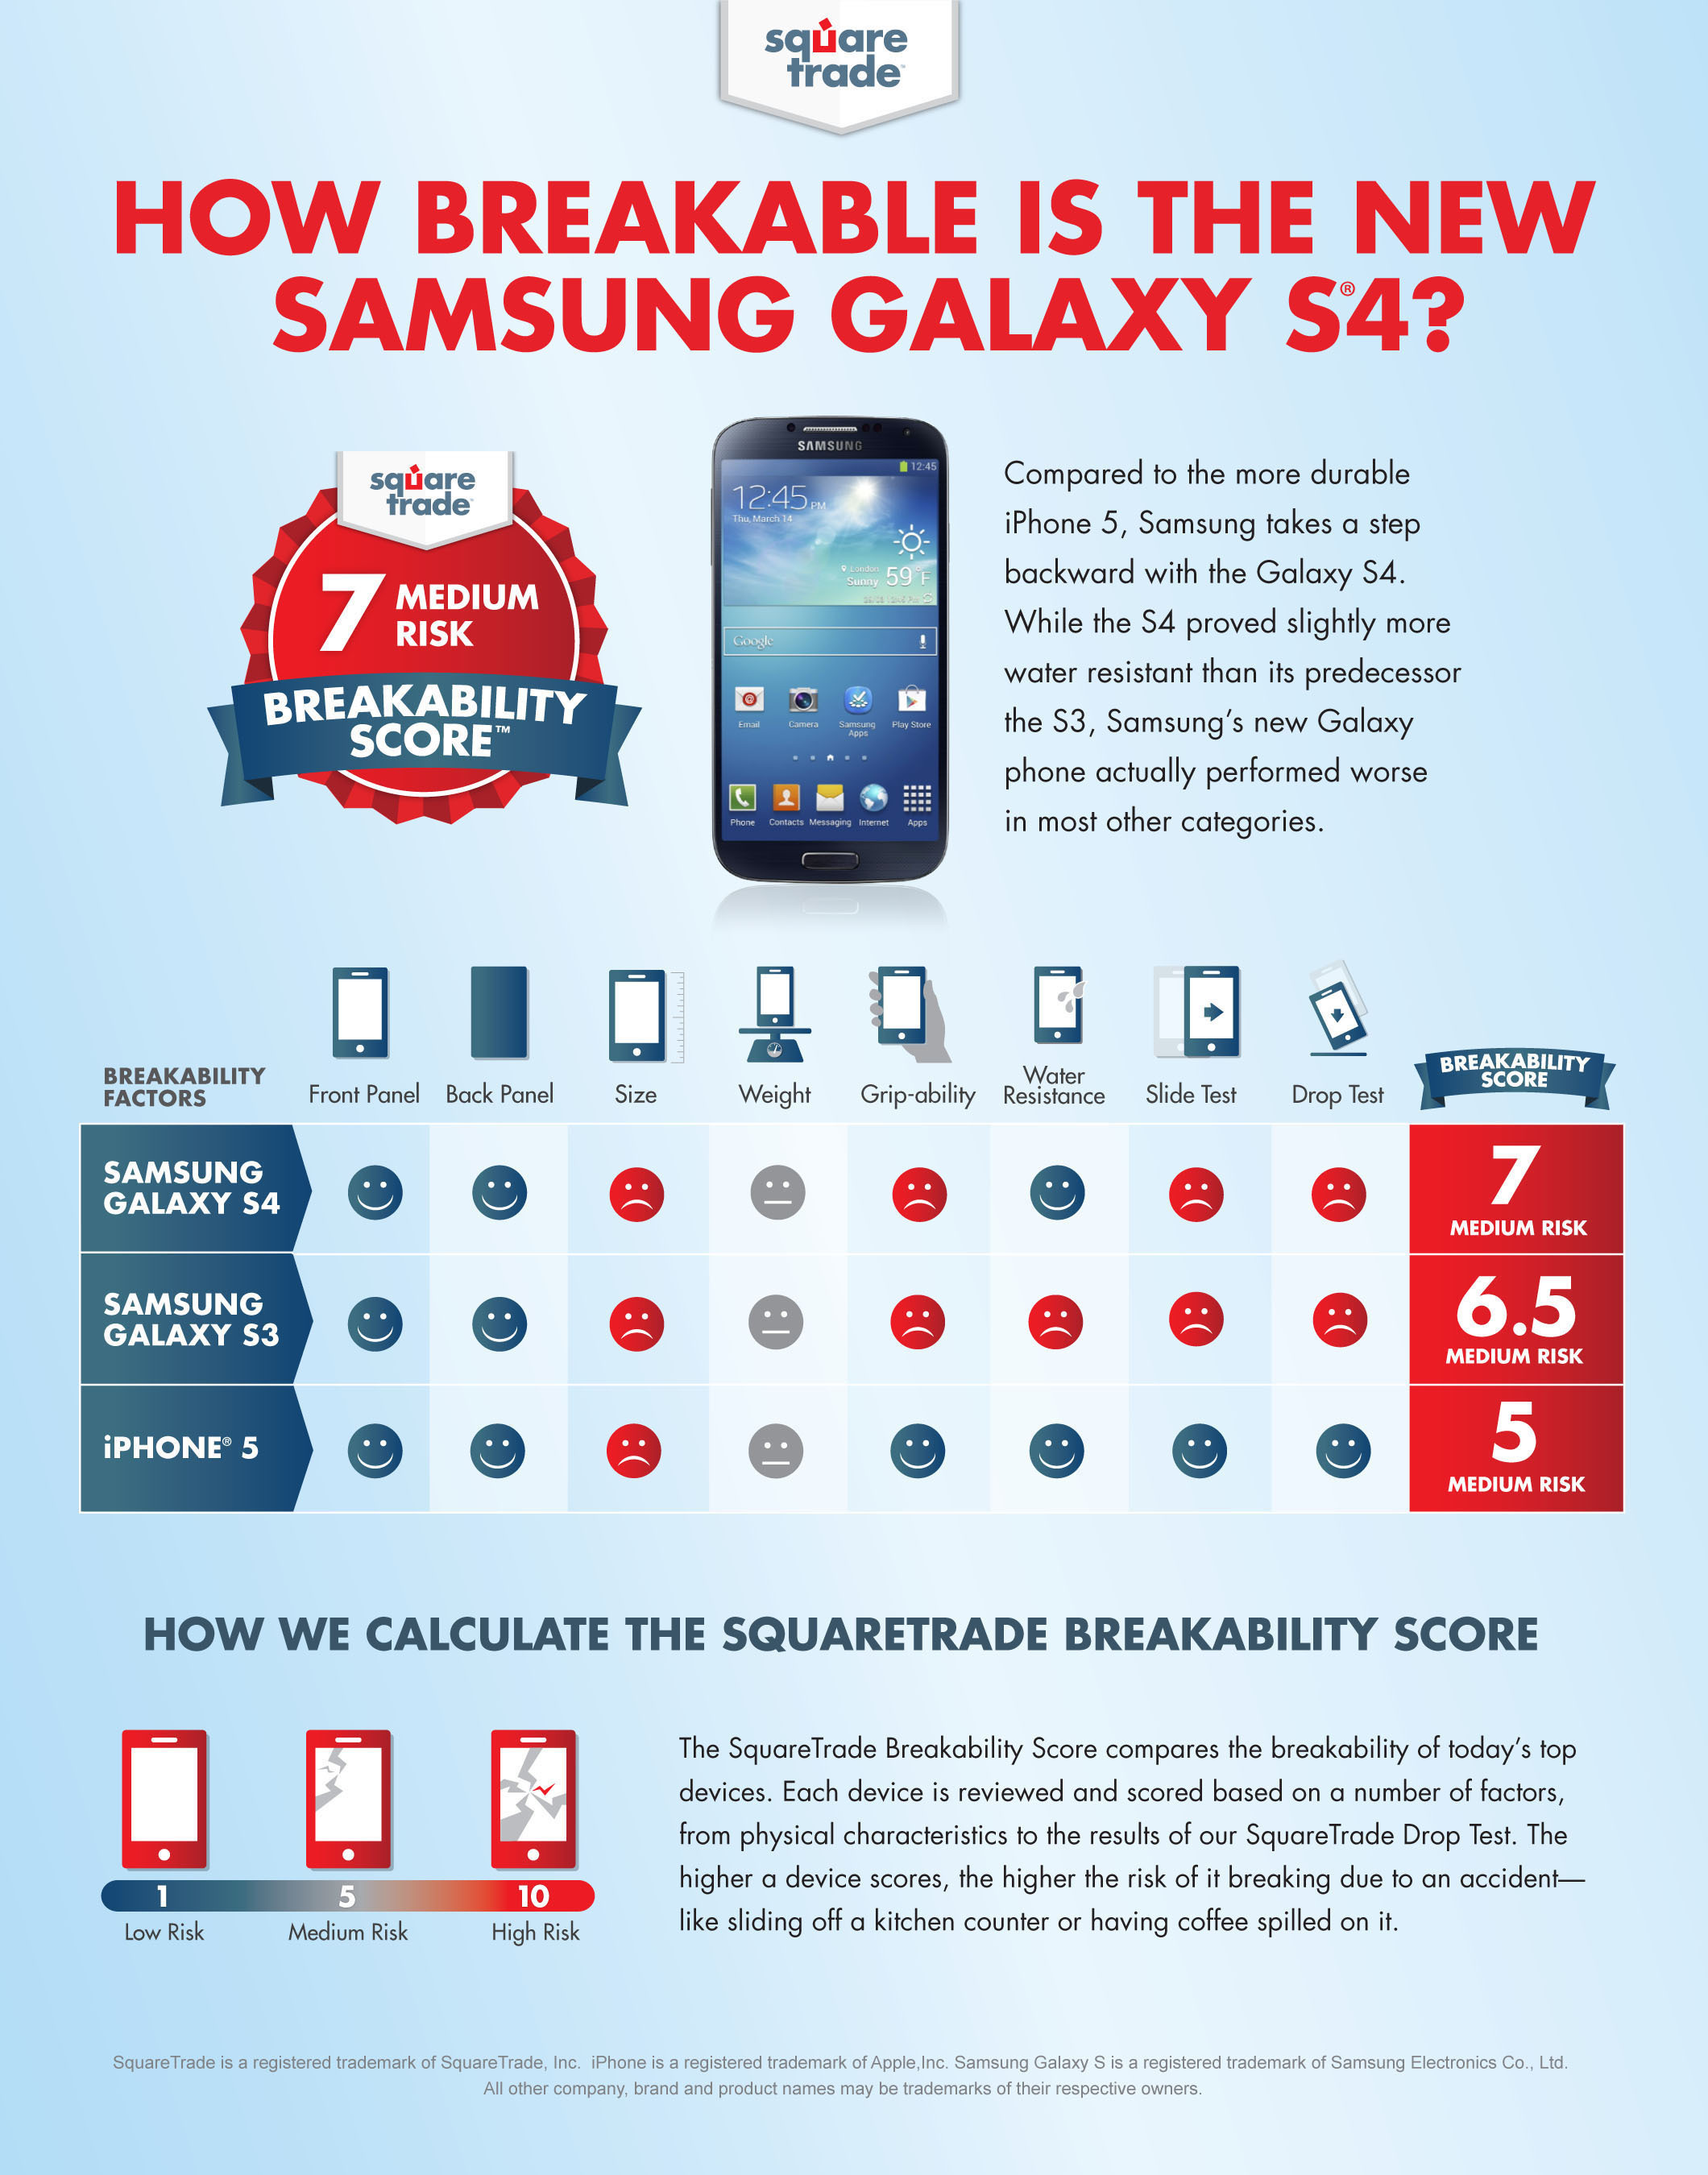 SquareTrade's Breakability Score Debuts as New Richter Scale for Device Danger - New Samsung S4 Rated a Dangerous 7; New Scorecard Fills Gap Left By Traditional Product Reviews and Calculates Danger in Everyday Situations.  (PRNewsFoto/SquareTrade)